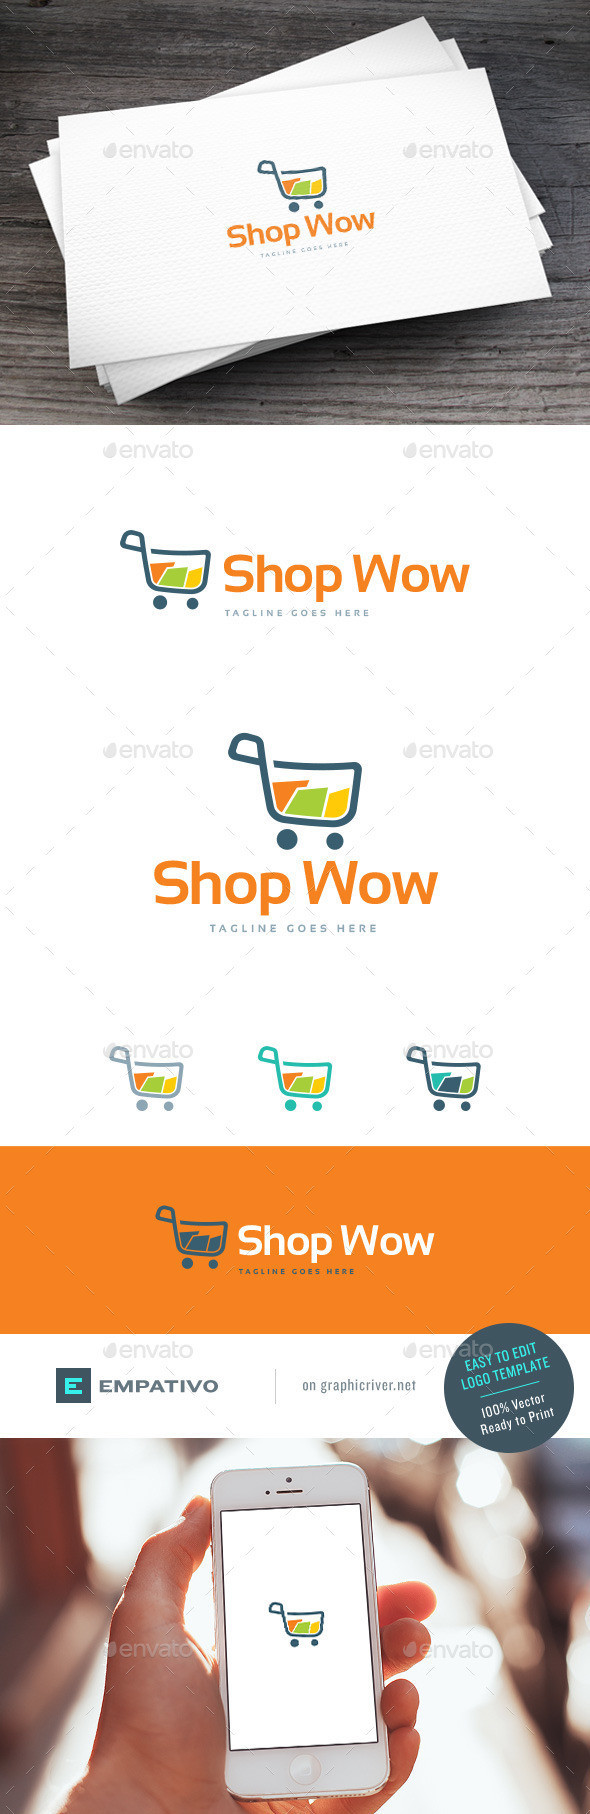 Shop wow logo template